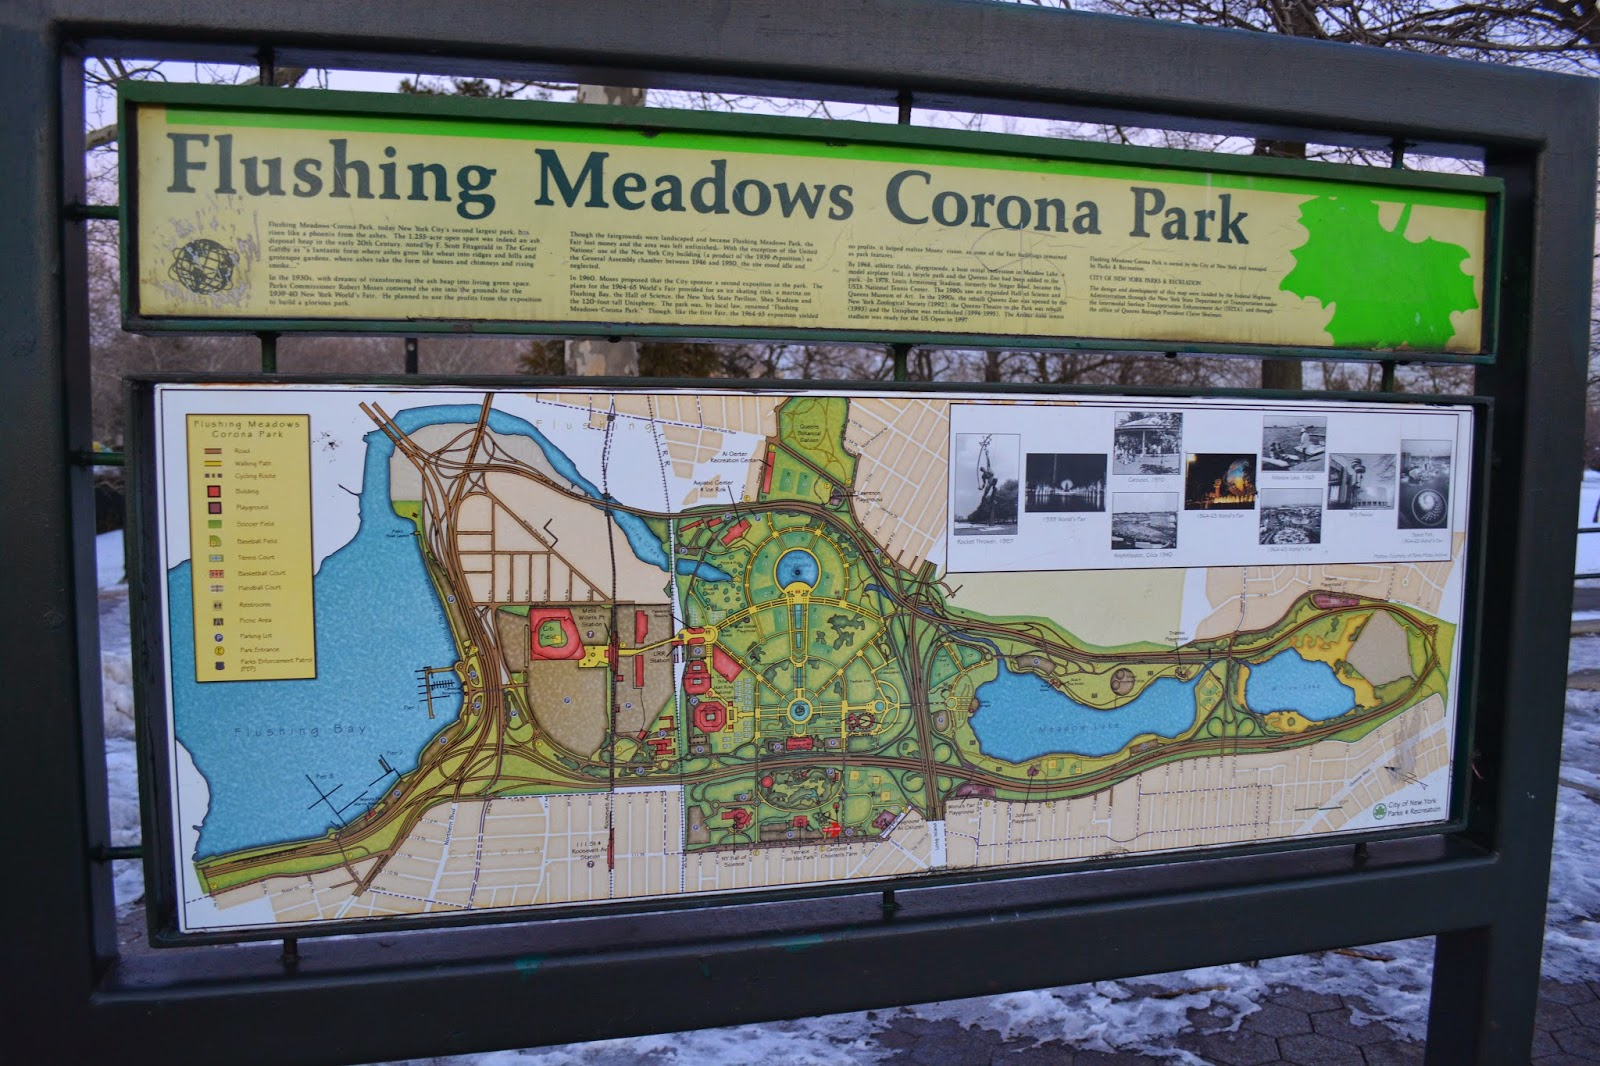 in fact even a map located outside of the park makes no indication of its existence